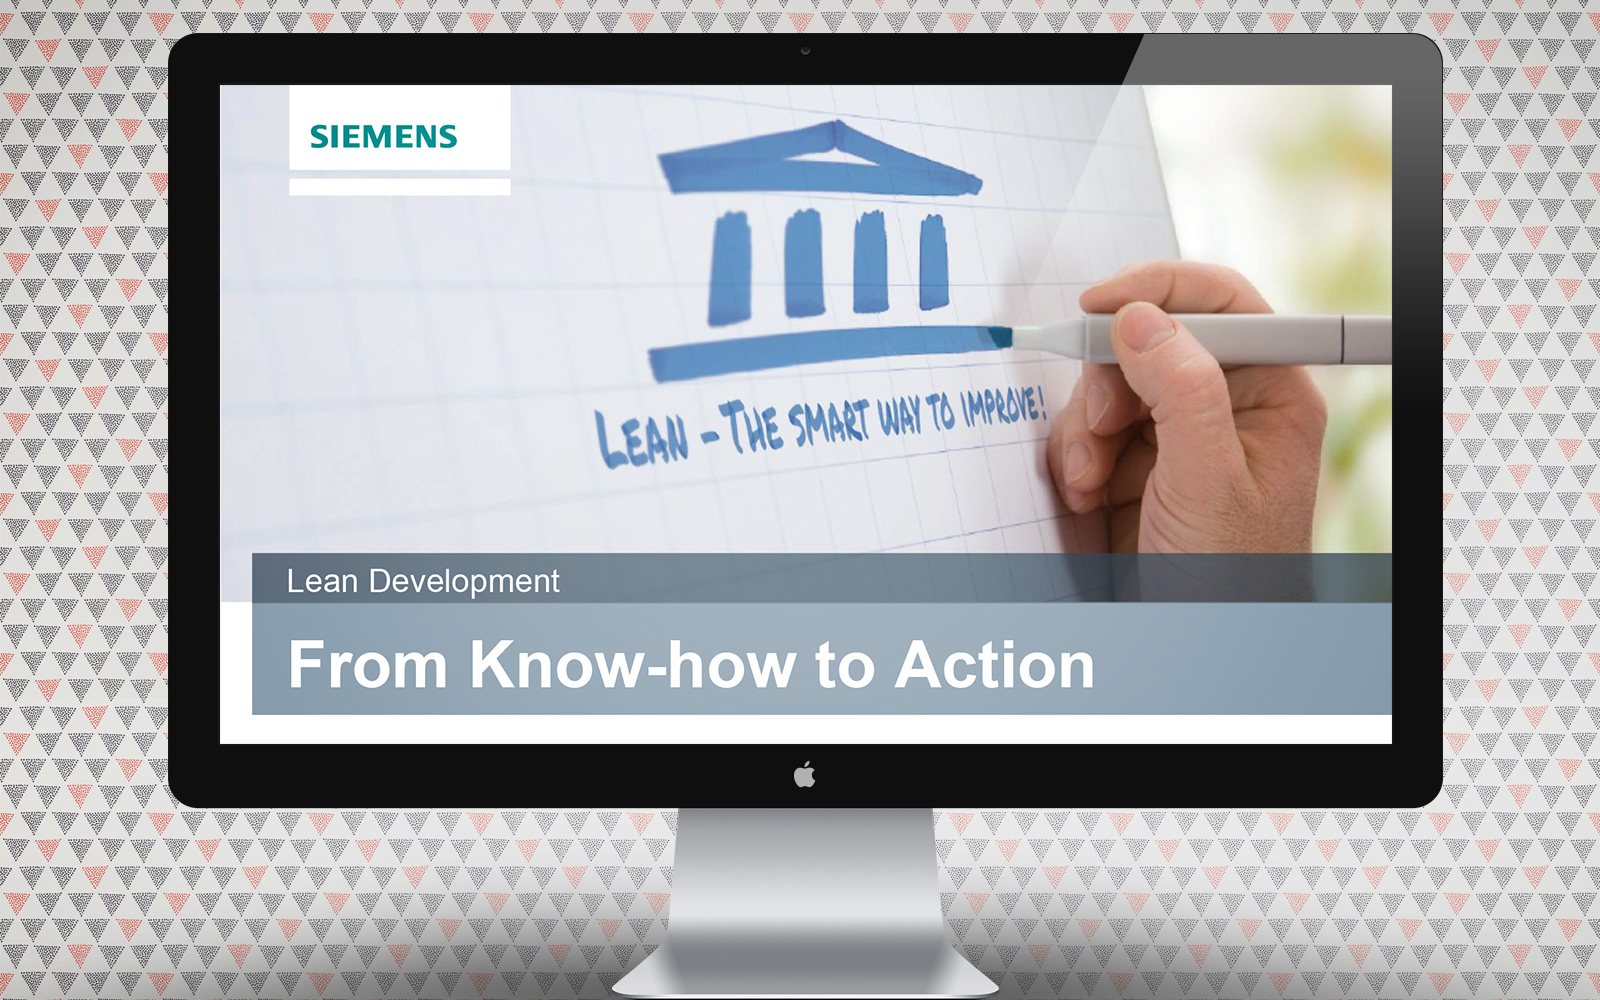 laa-library_forum2015-siemens